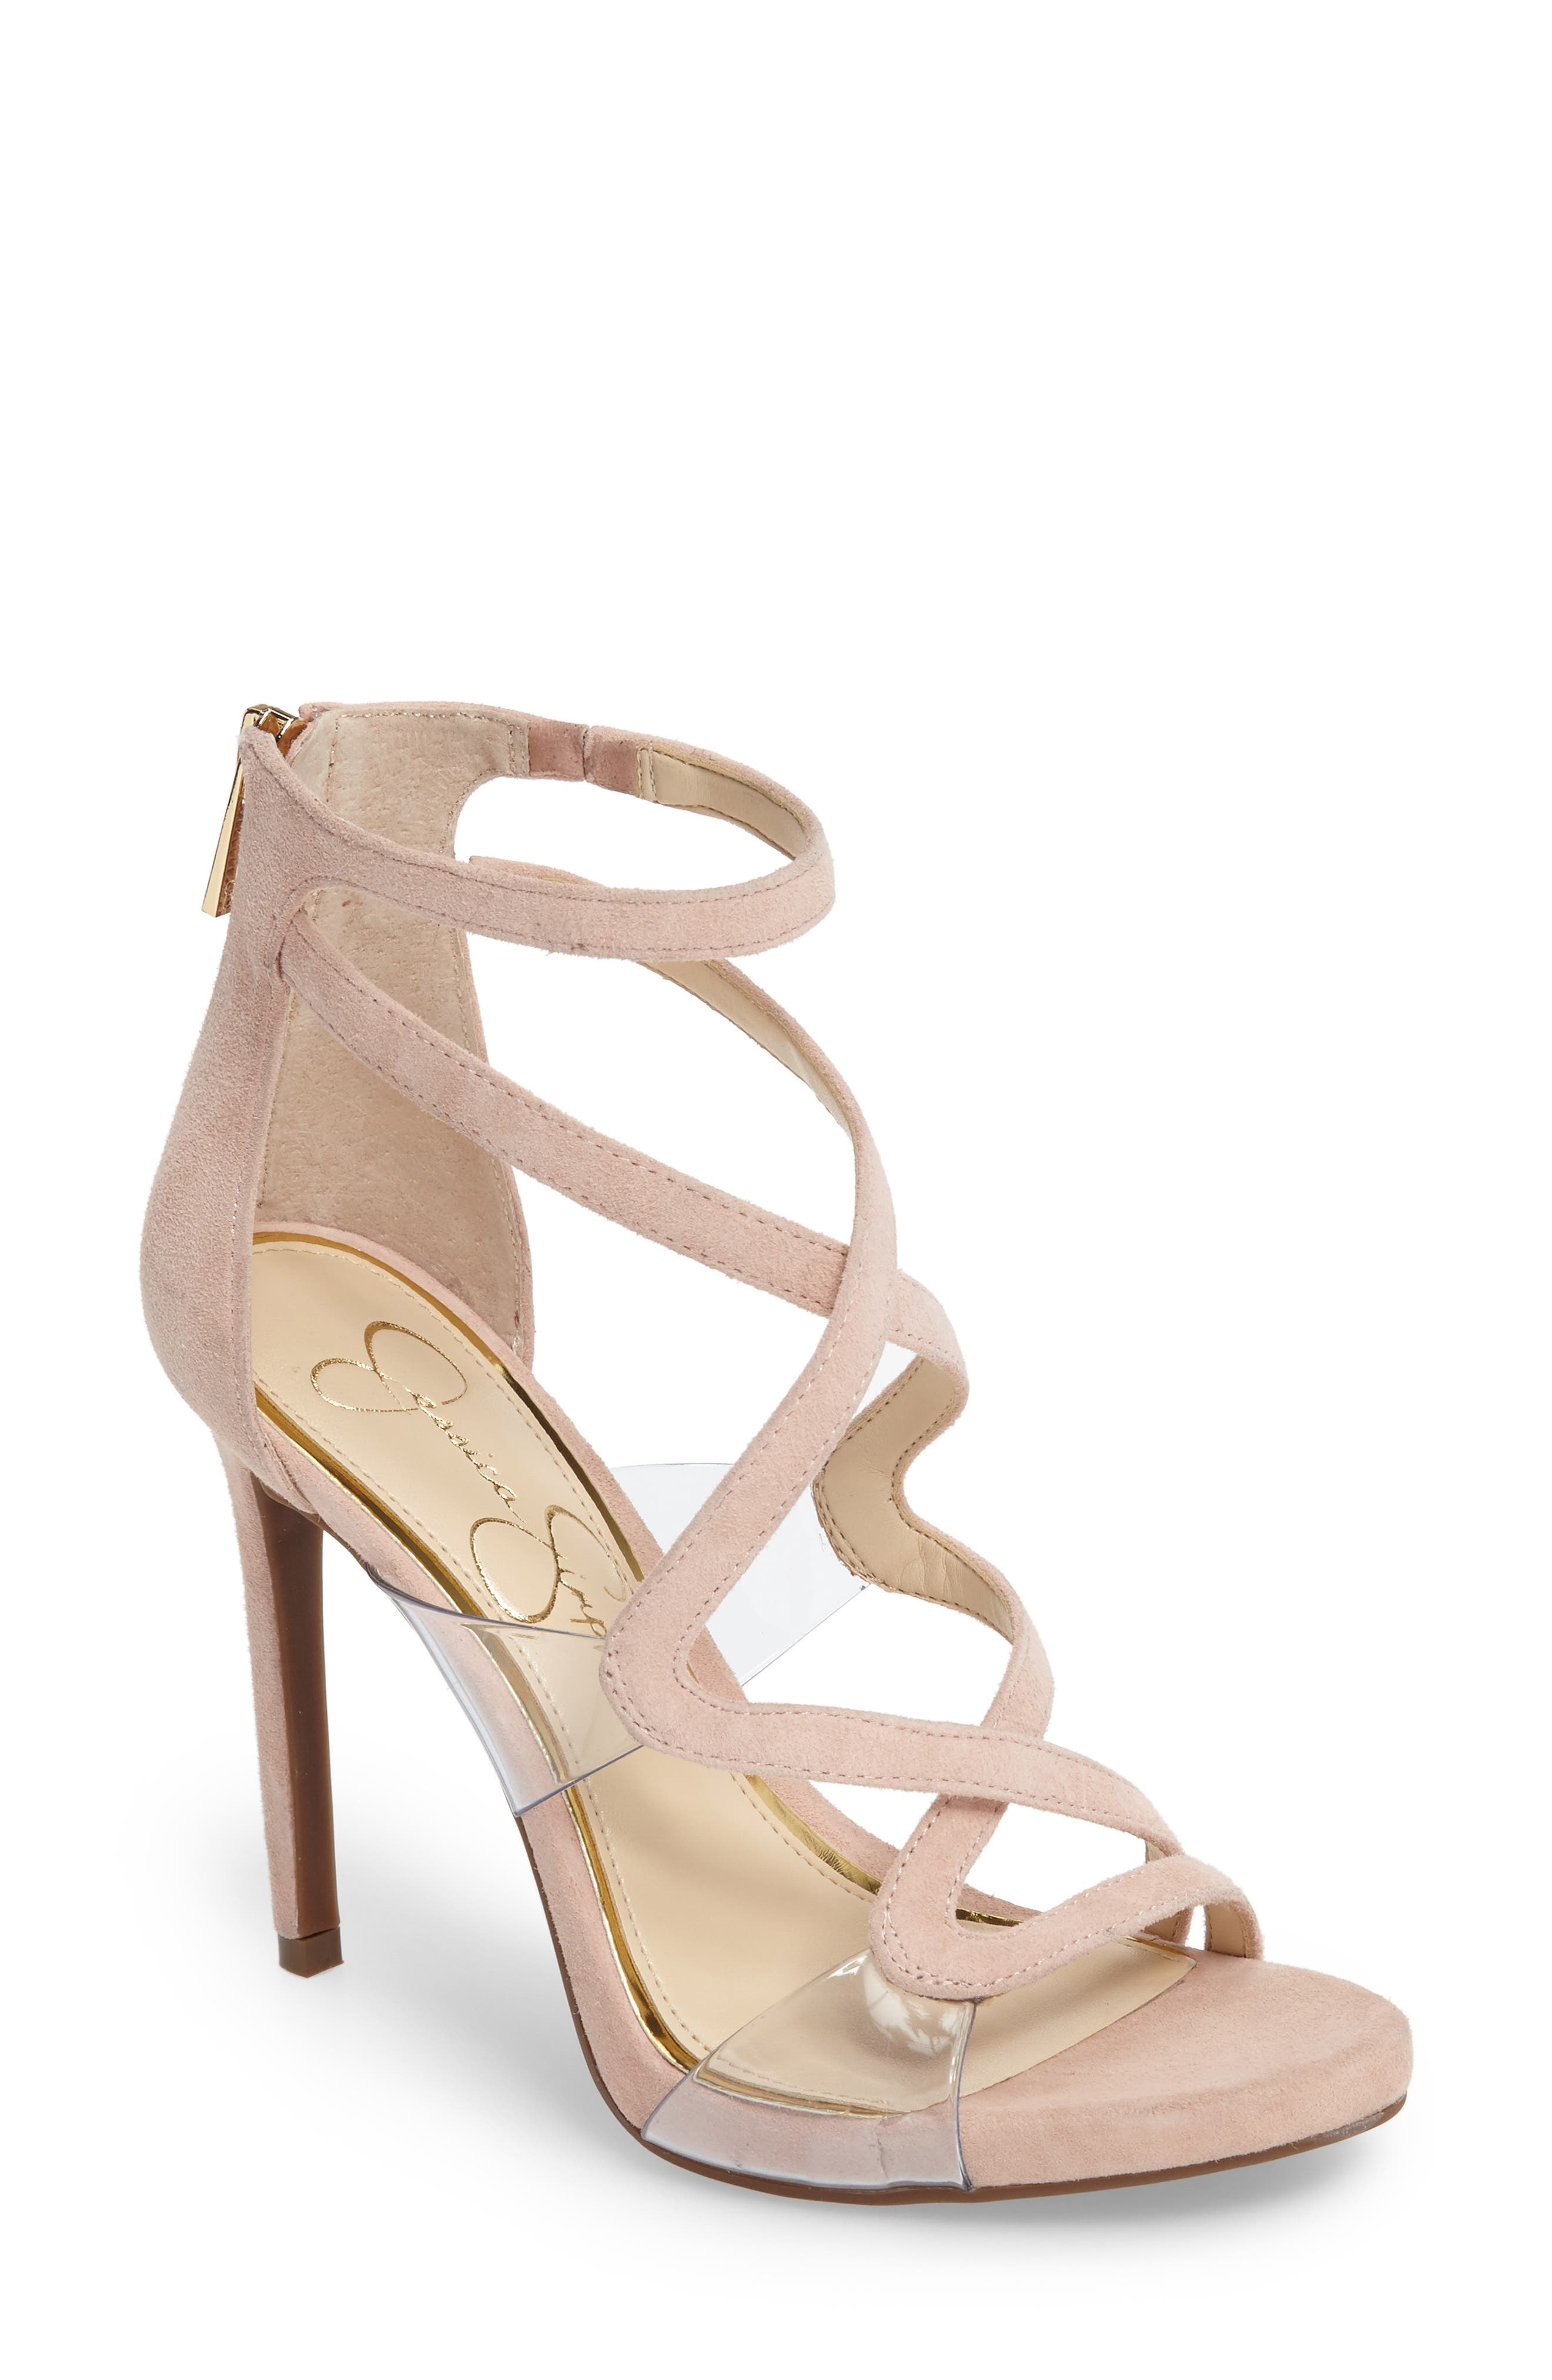 Jessica Simpson Roelyn Sandal (Women)